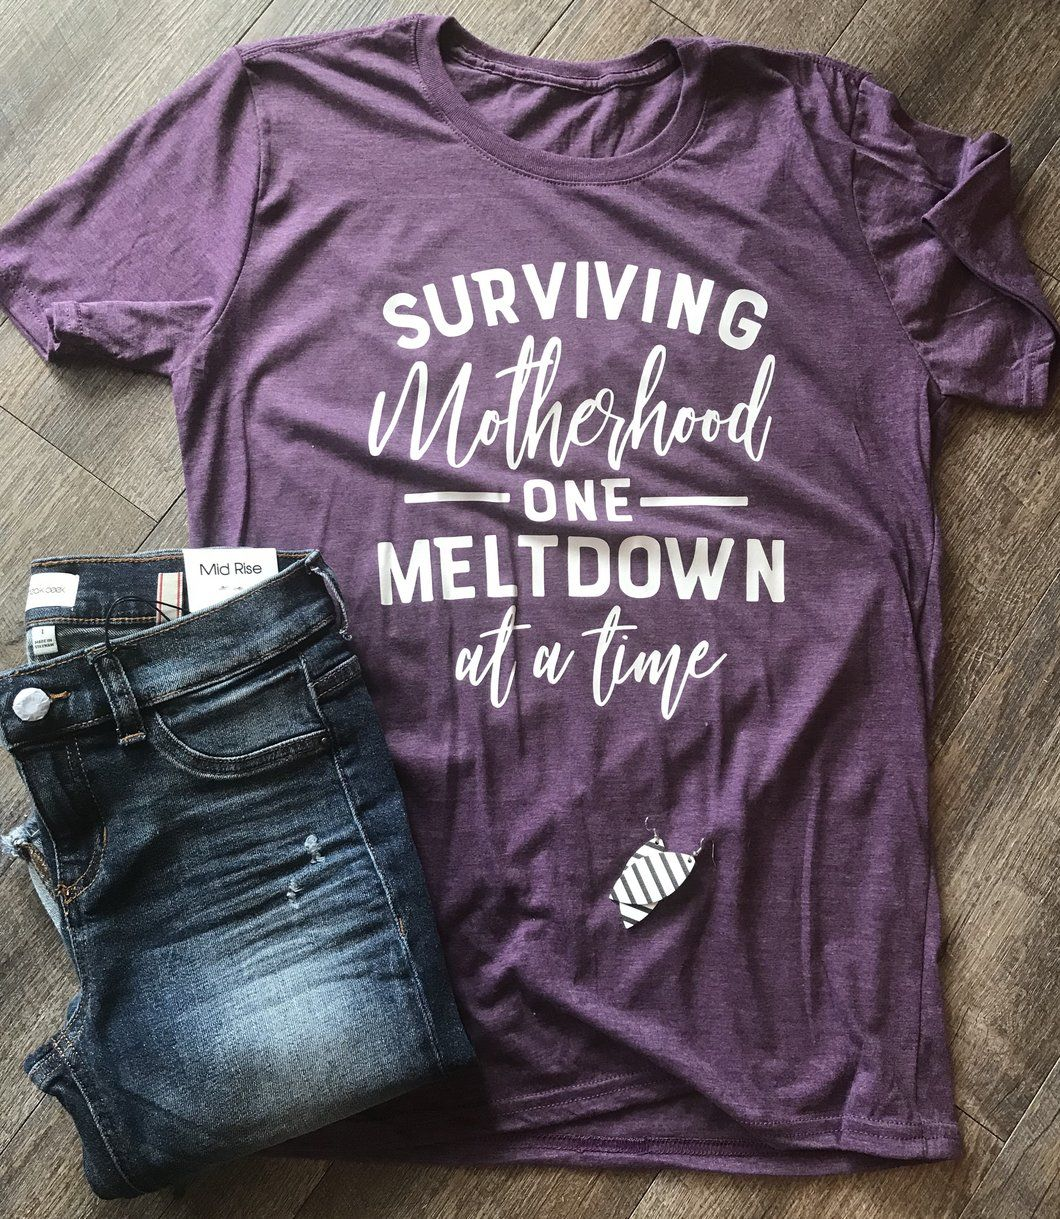 Best Funny Mom  Surviving motherhood one meltdown at a time funny mom life tee - Mavictoria Designs Hot Press Express 2